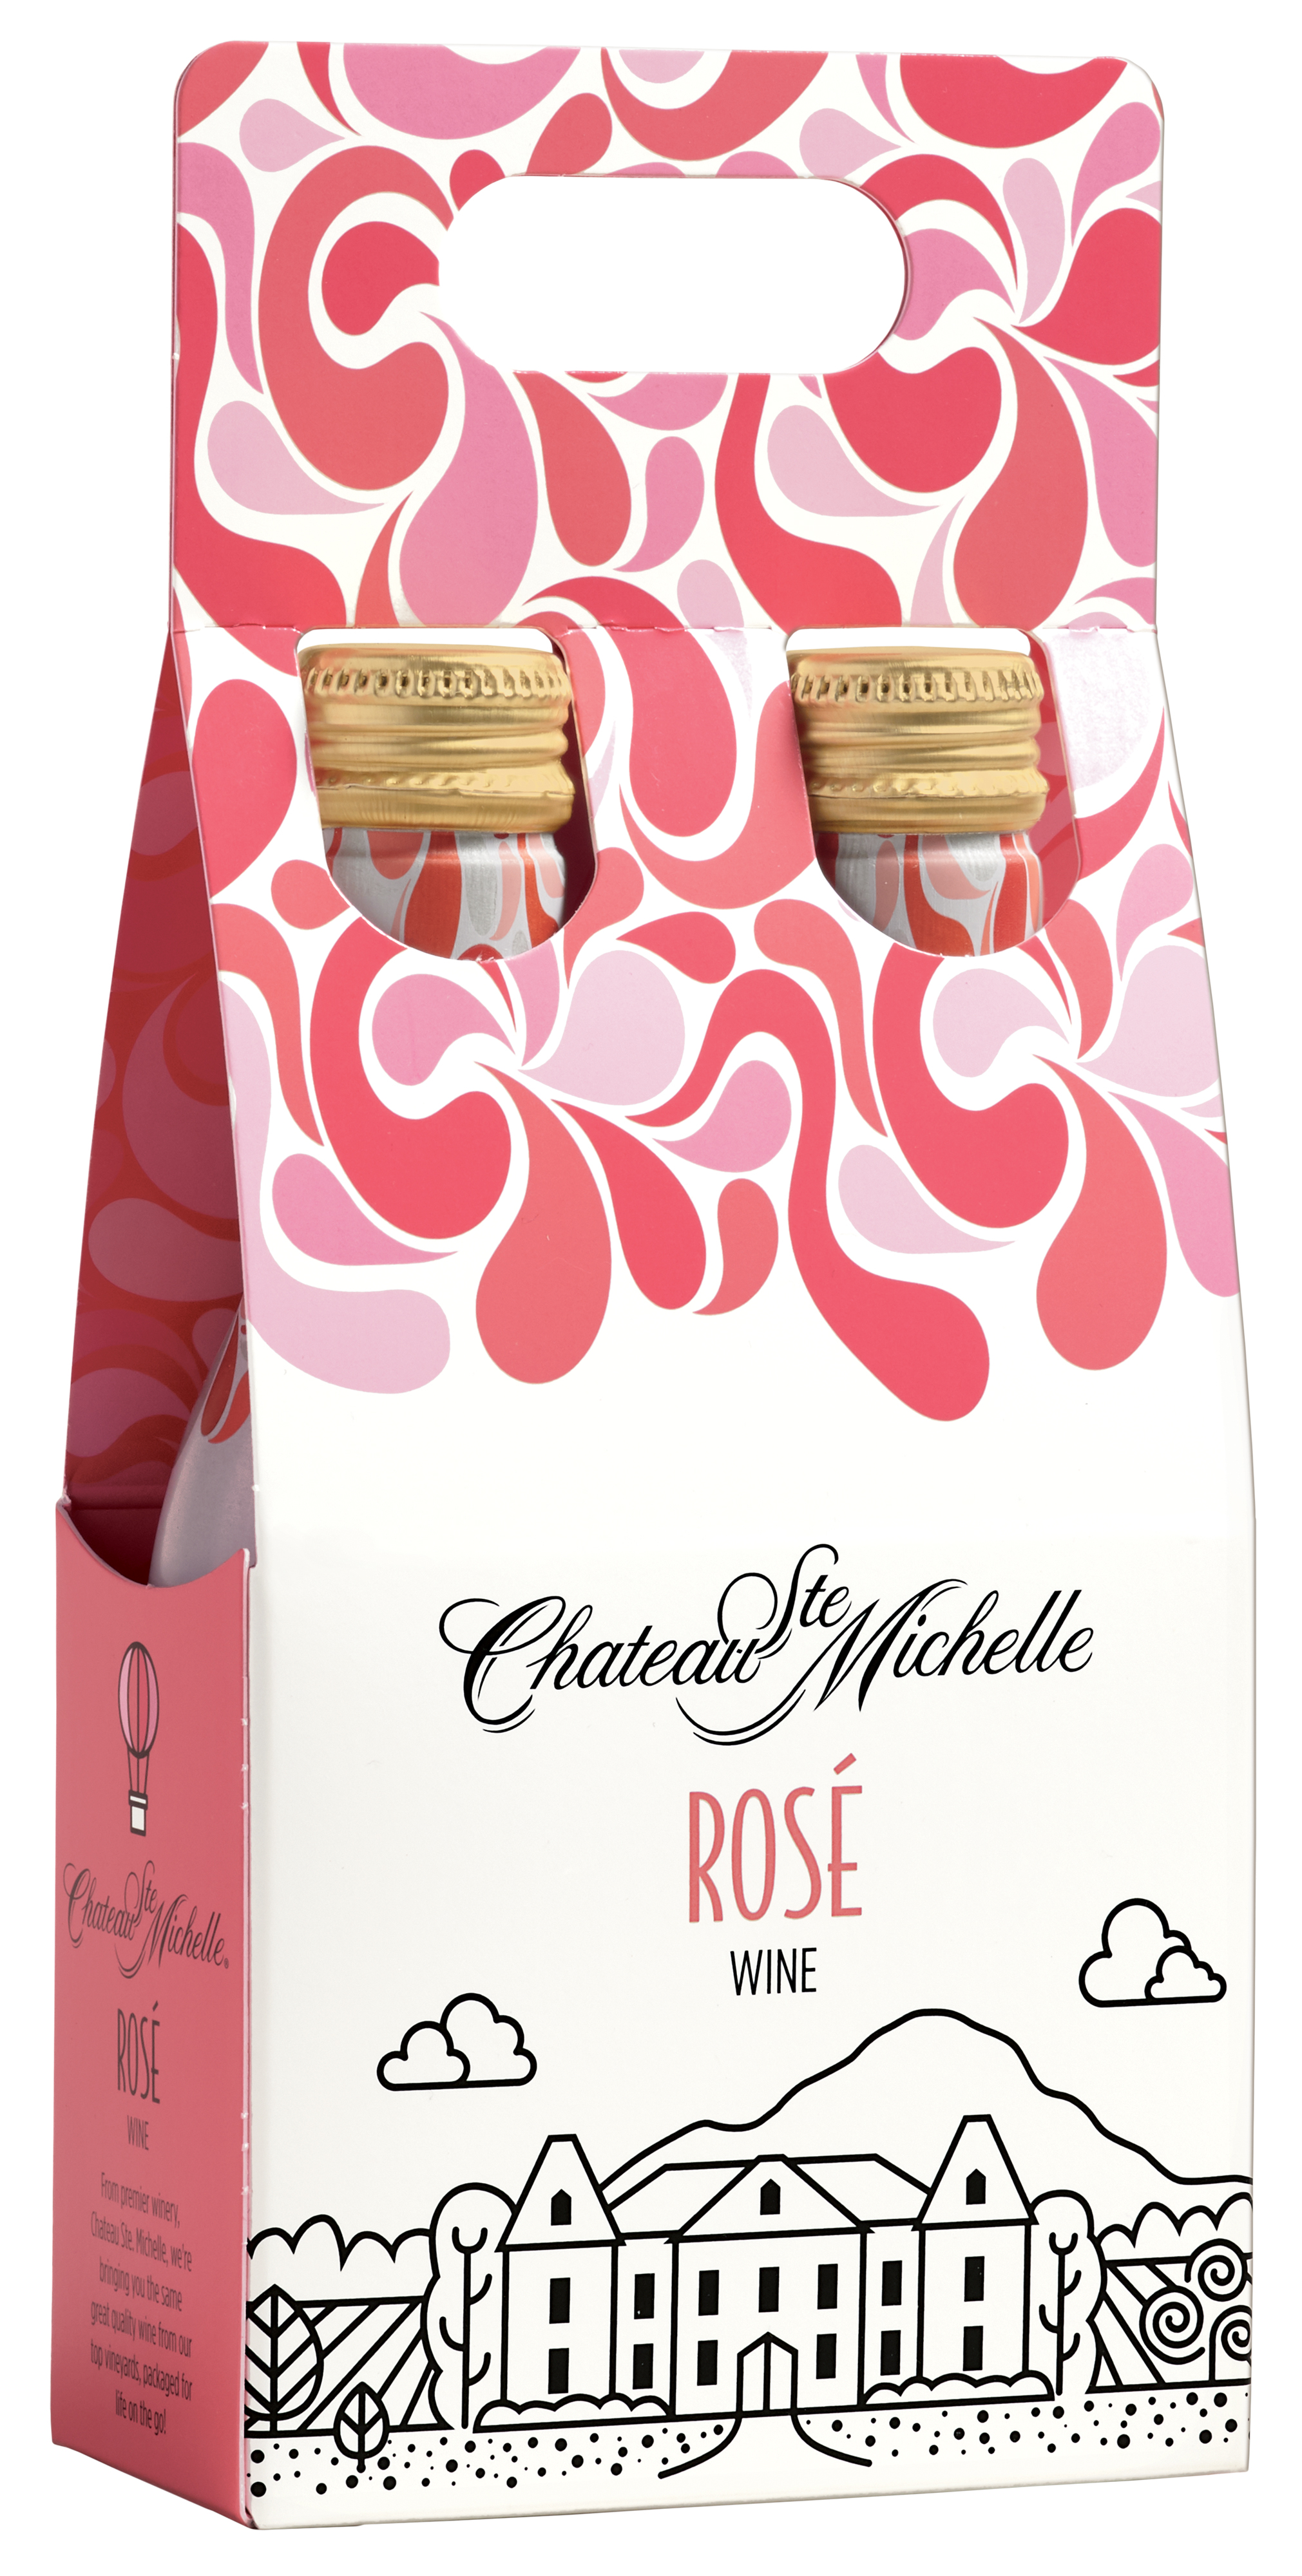 Chateau Ste. Michelle Aluminum Bottles - Rose (Image: Courtesy of{ }Chateau Ste. Michelle Winery)